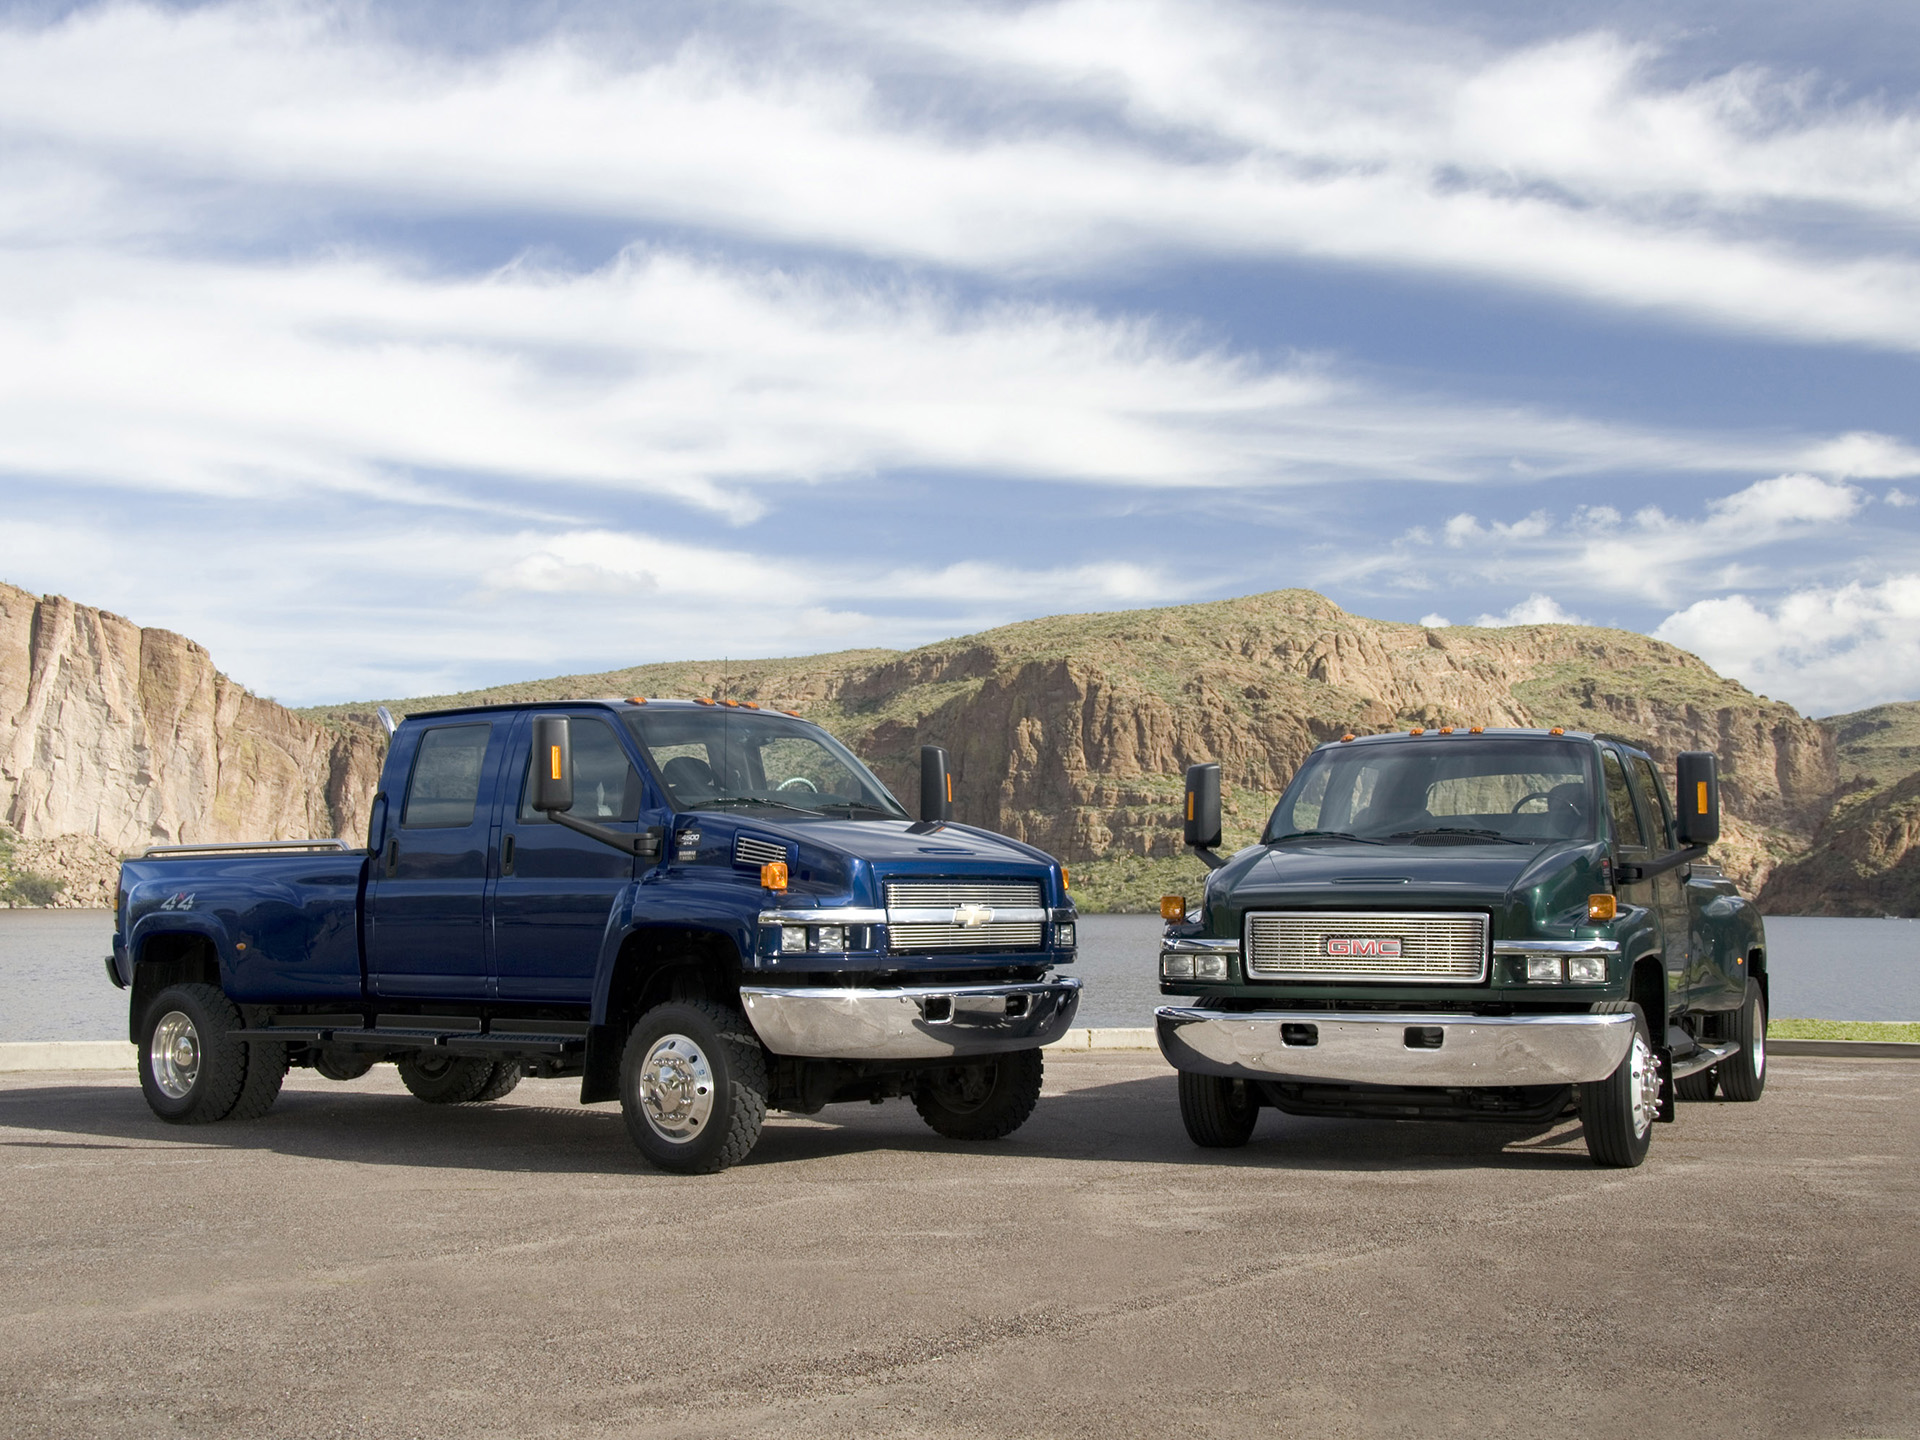 Chevrolet C4500 photos - Photo Gallery Page #2| CarsBase.com